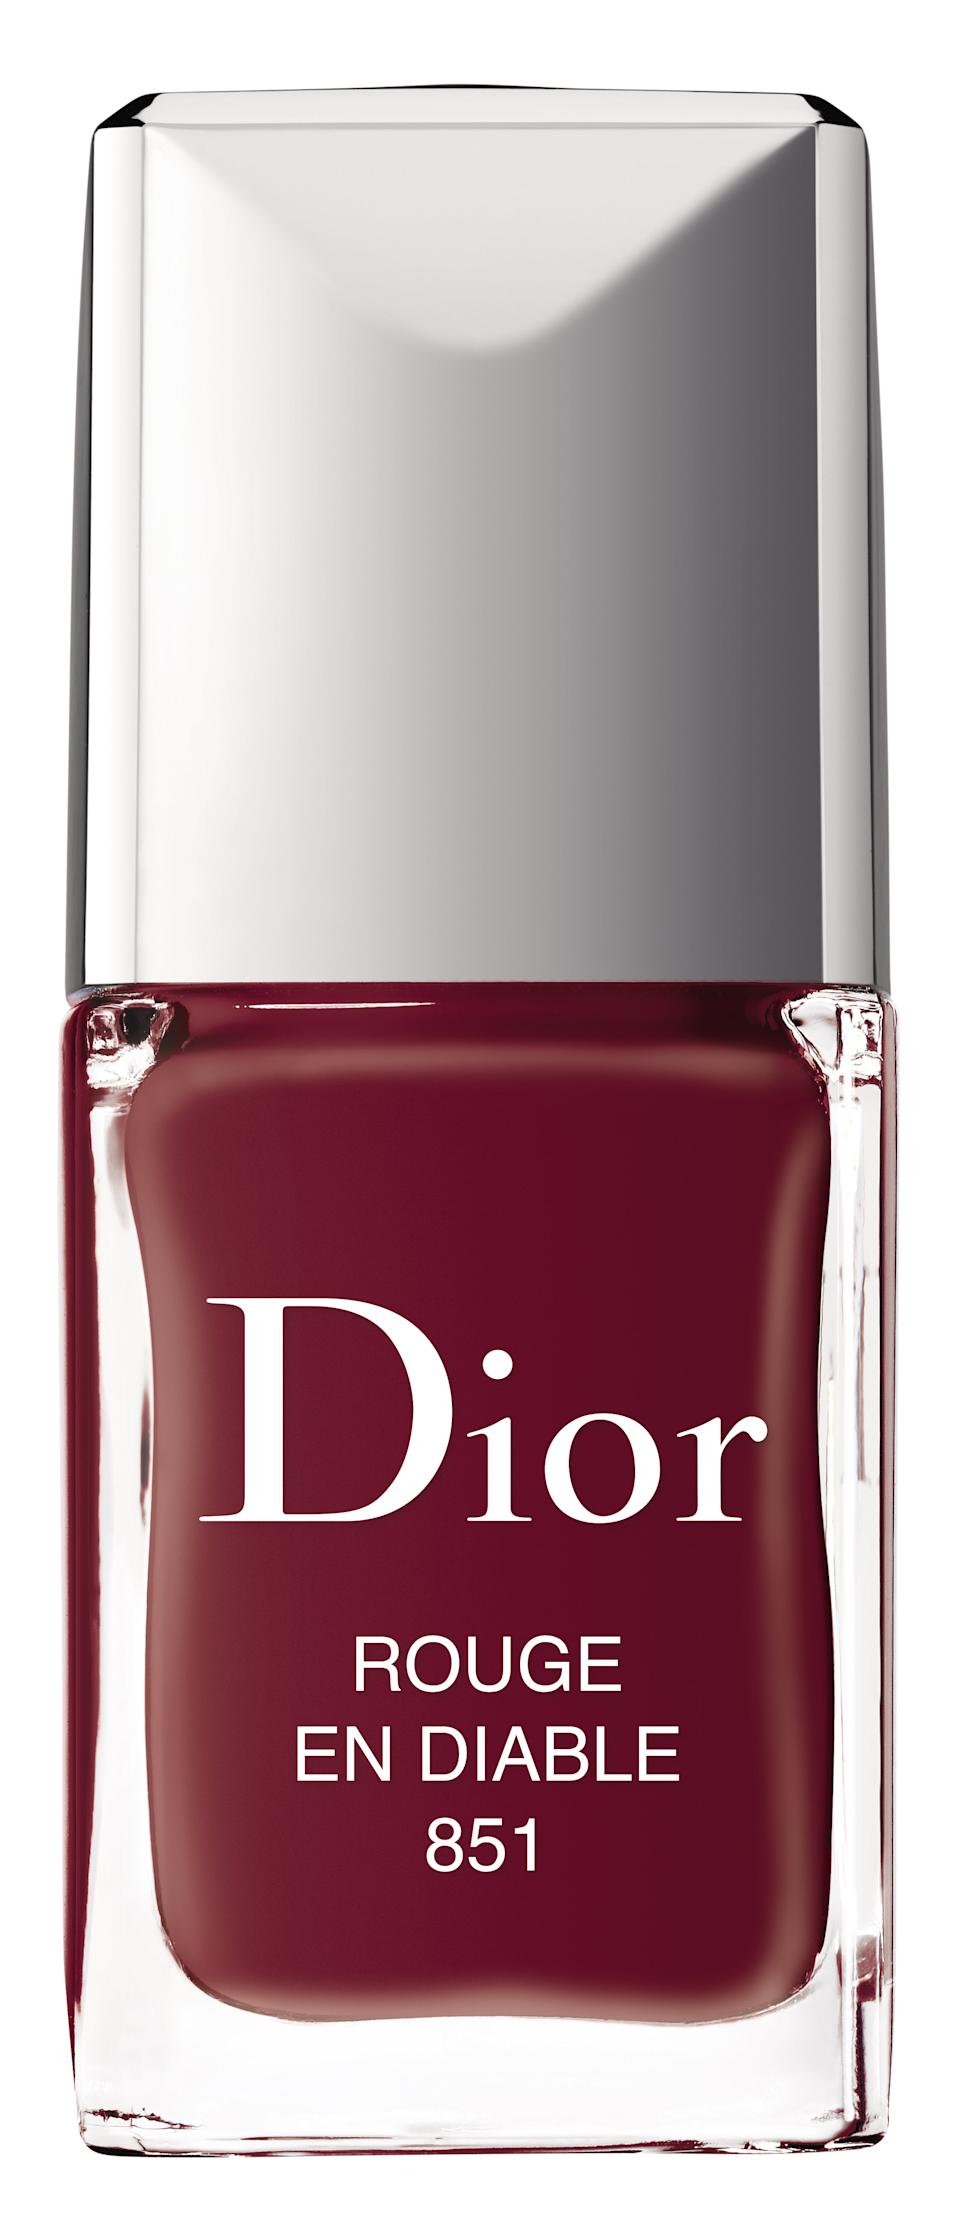 "<h3>Dior Vernis Nail Lacquer in <strong>Rouge en Diable</strong></h3><br>Dior carries a gorgeous lacquer that's just a tiny bit warmer than the others. The shade name, Rouge en Diable, means Devil Red.<br><br><strong>Dior</strong> Dior Vernis, $, available at <a href=""https://www.dior.com/en_us/products/beauty-Y0002959_F000355999-dior-vernis-couture-color-gel-shine-long-wear-nail-lacquer?gclid=EAIaIQobChMI15uKpKWu5wIVBKSzCh2kdgXyEAYYASABEgLHwfD_BwE&gclsrc=aw.ds"" rel=""nofollow noopener"" target=""_blank"" data-ylk=""slk:Dior"" class=""link rapid-noclick-resp"">Dior</a>"